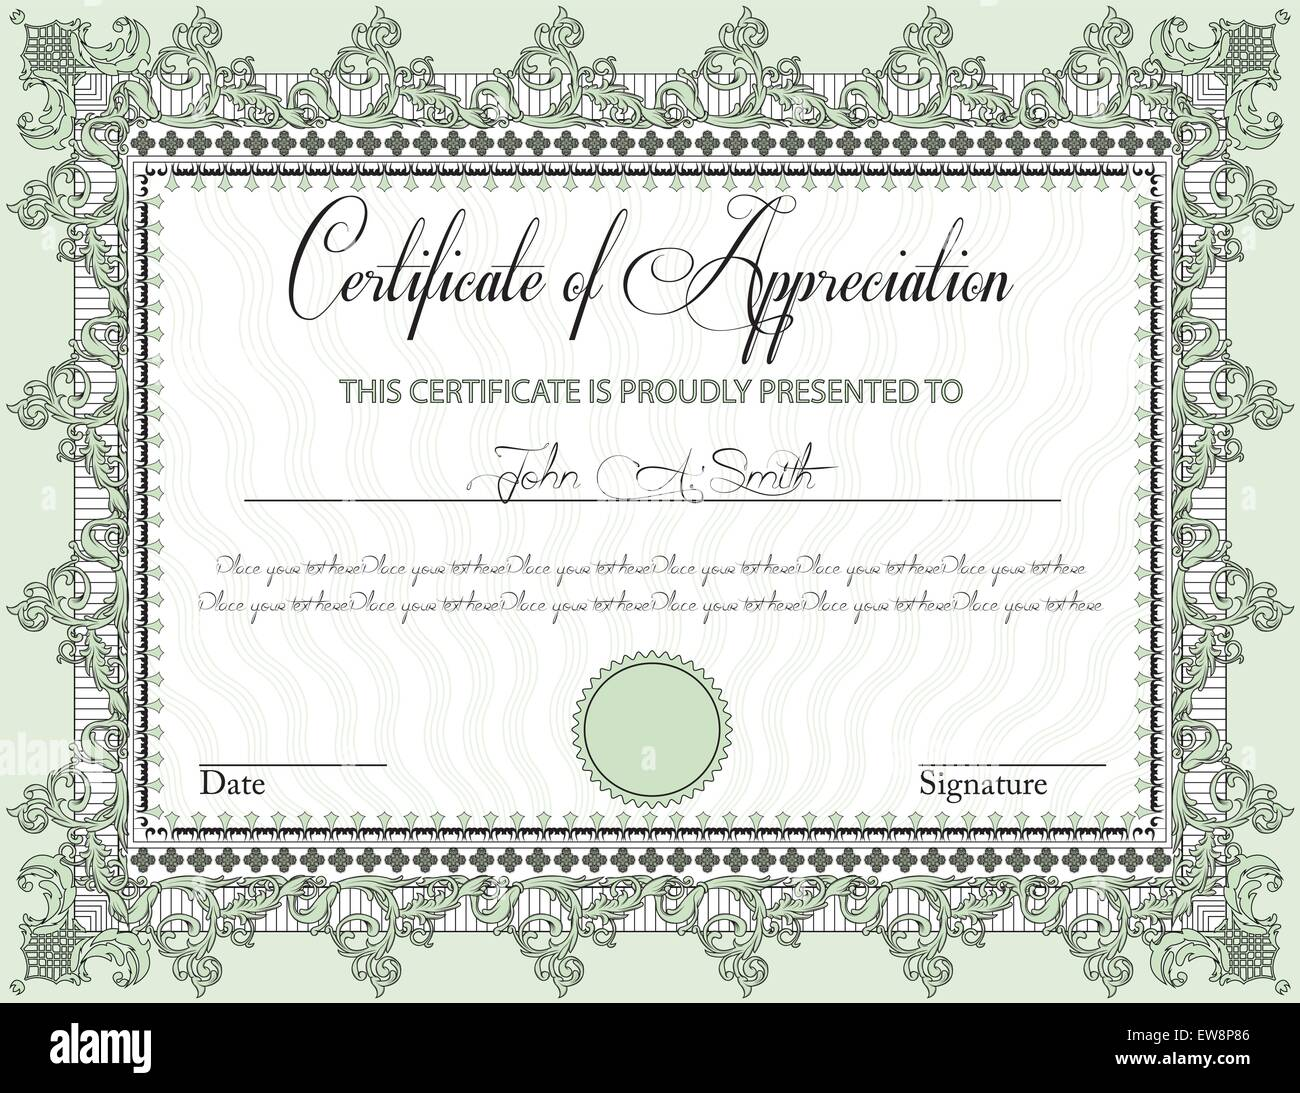 Vintage certificate of appreciation with ornate elegant retro stock vintage certificate of appreciation with ornate elegant retro abstract floral design black and laurel green flowers and leaves on pale green background yelopaper Image collections